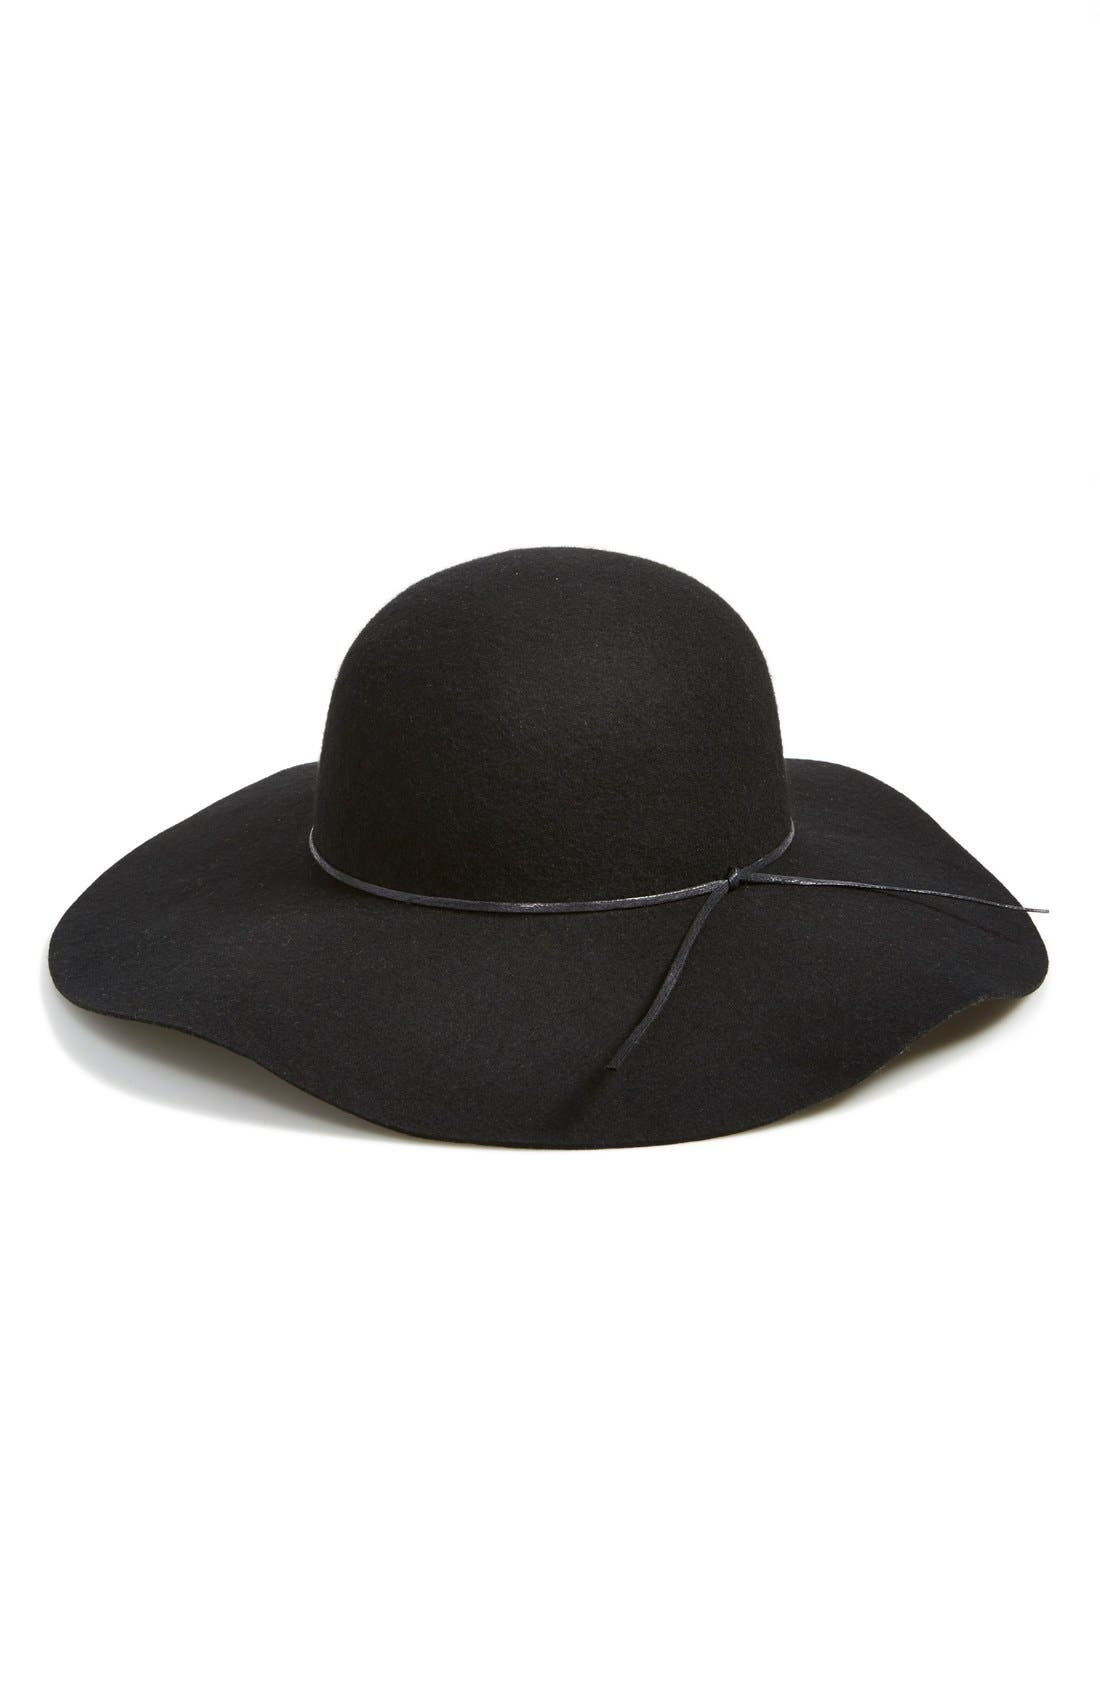 Alternate Image 2  - BP. Rope Trim Floppy Felt Hat